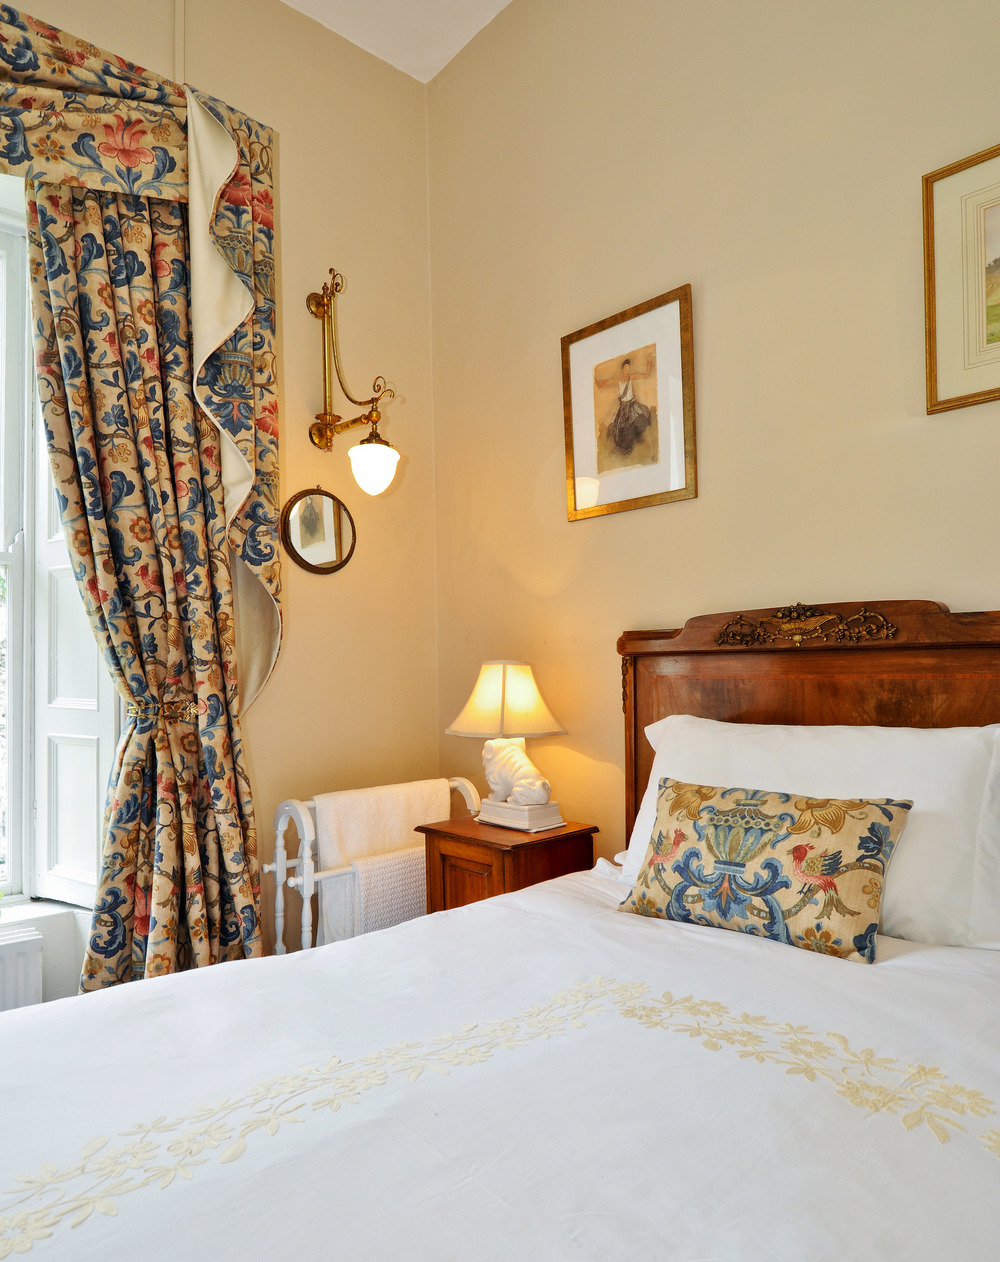 Luxury accommodation in historic house Ireland